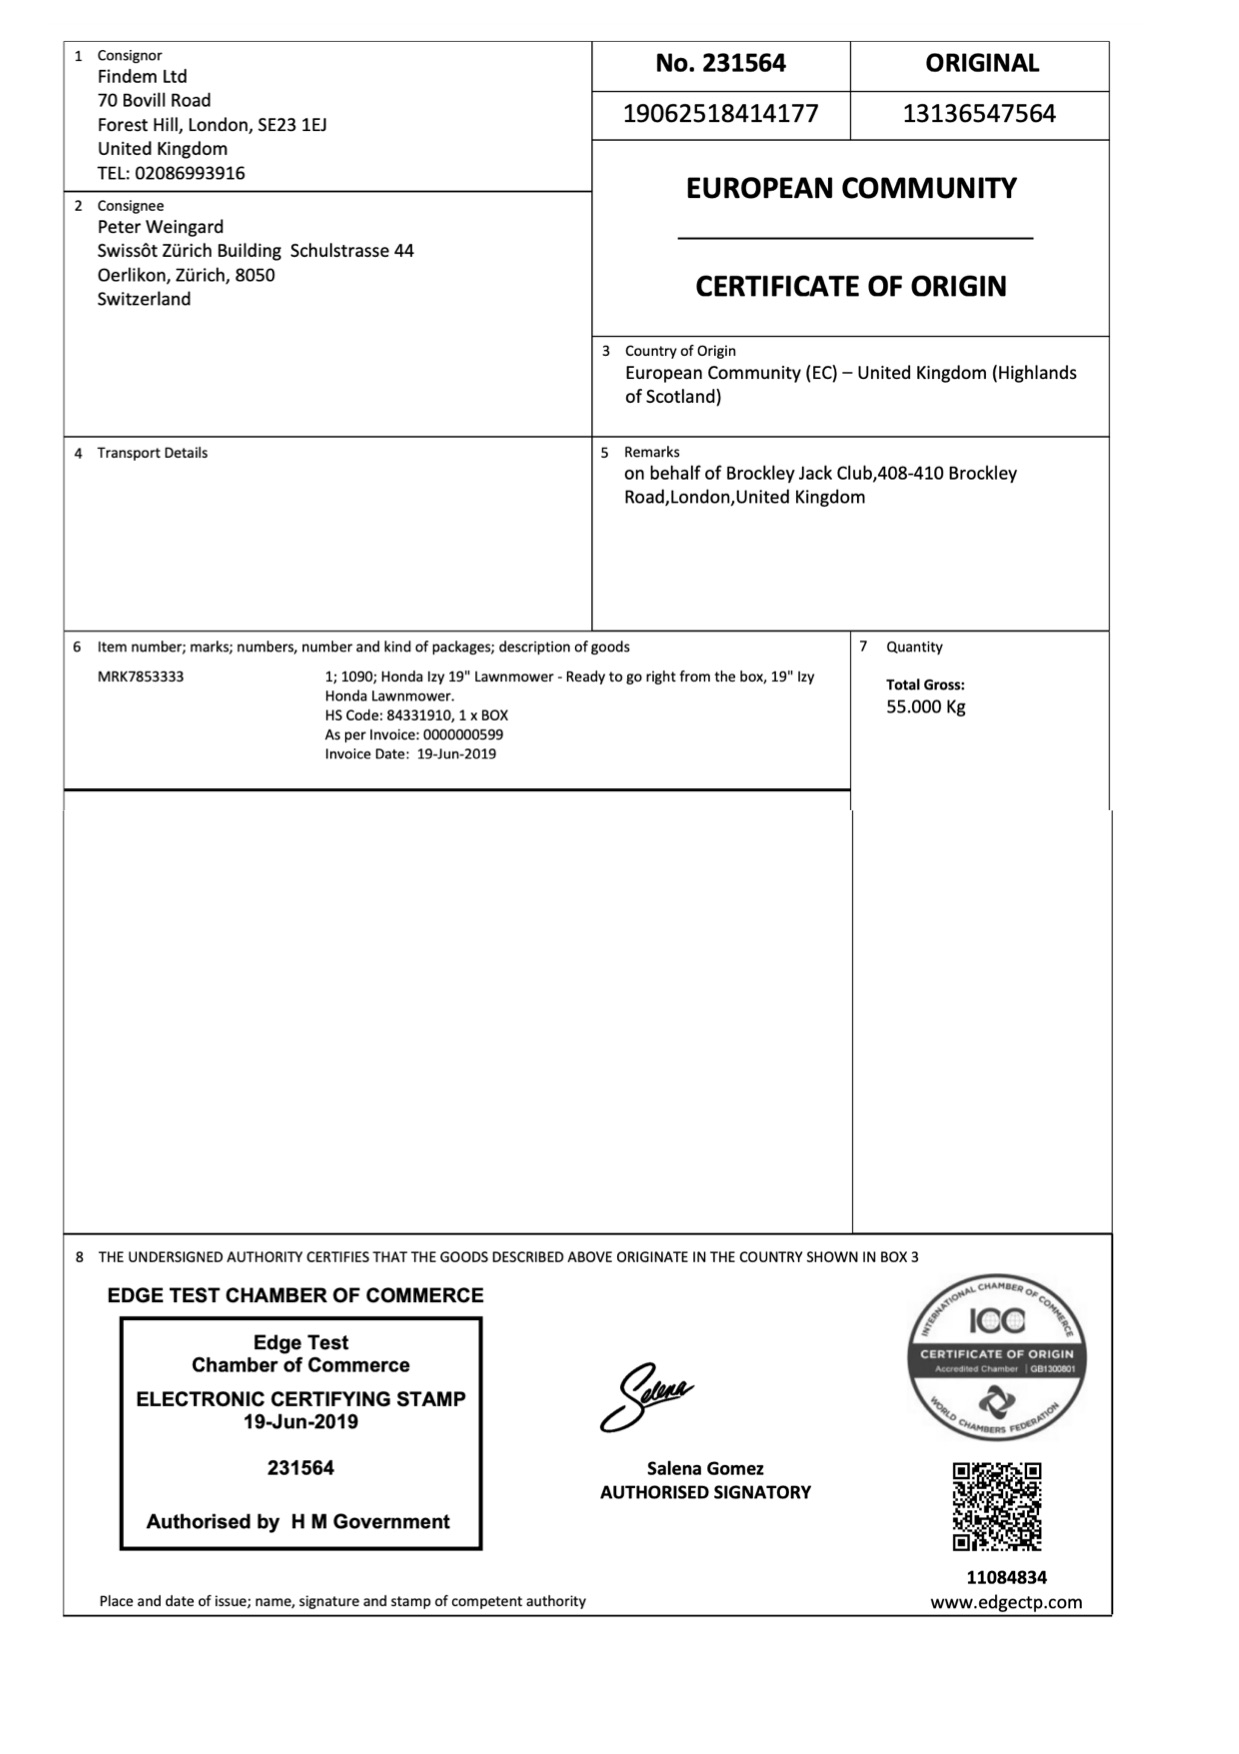 EdgeCERTS EC Certificate Of Origin